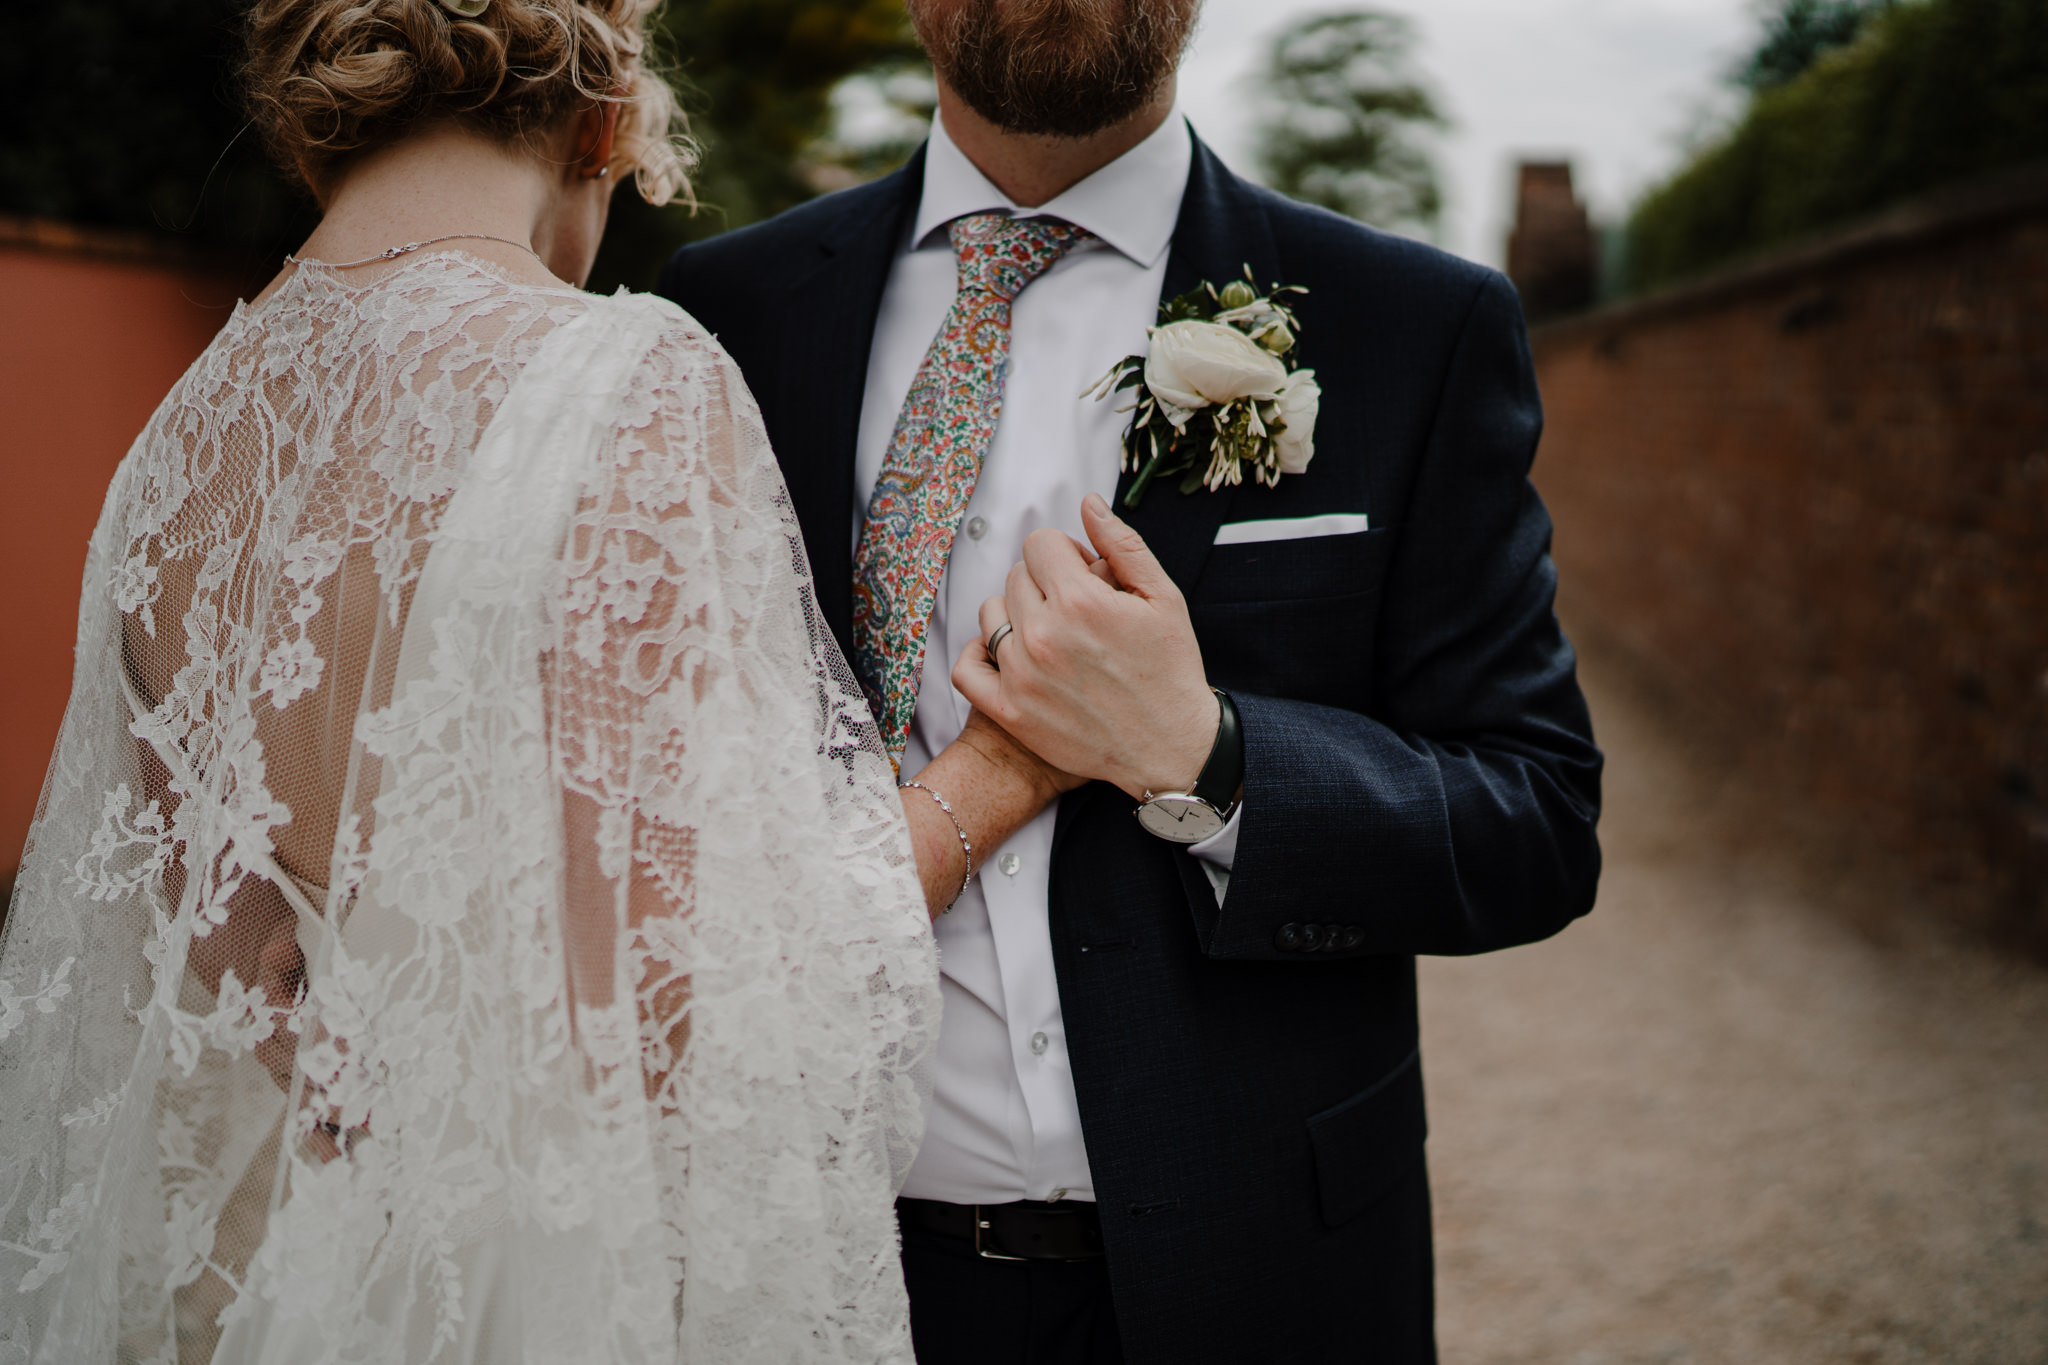 Tullyveery house wedding close up bride custome lace cape holding hands groom